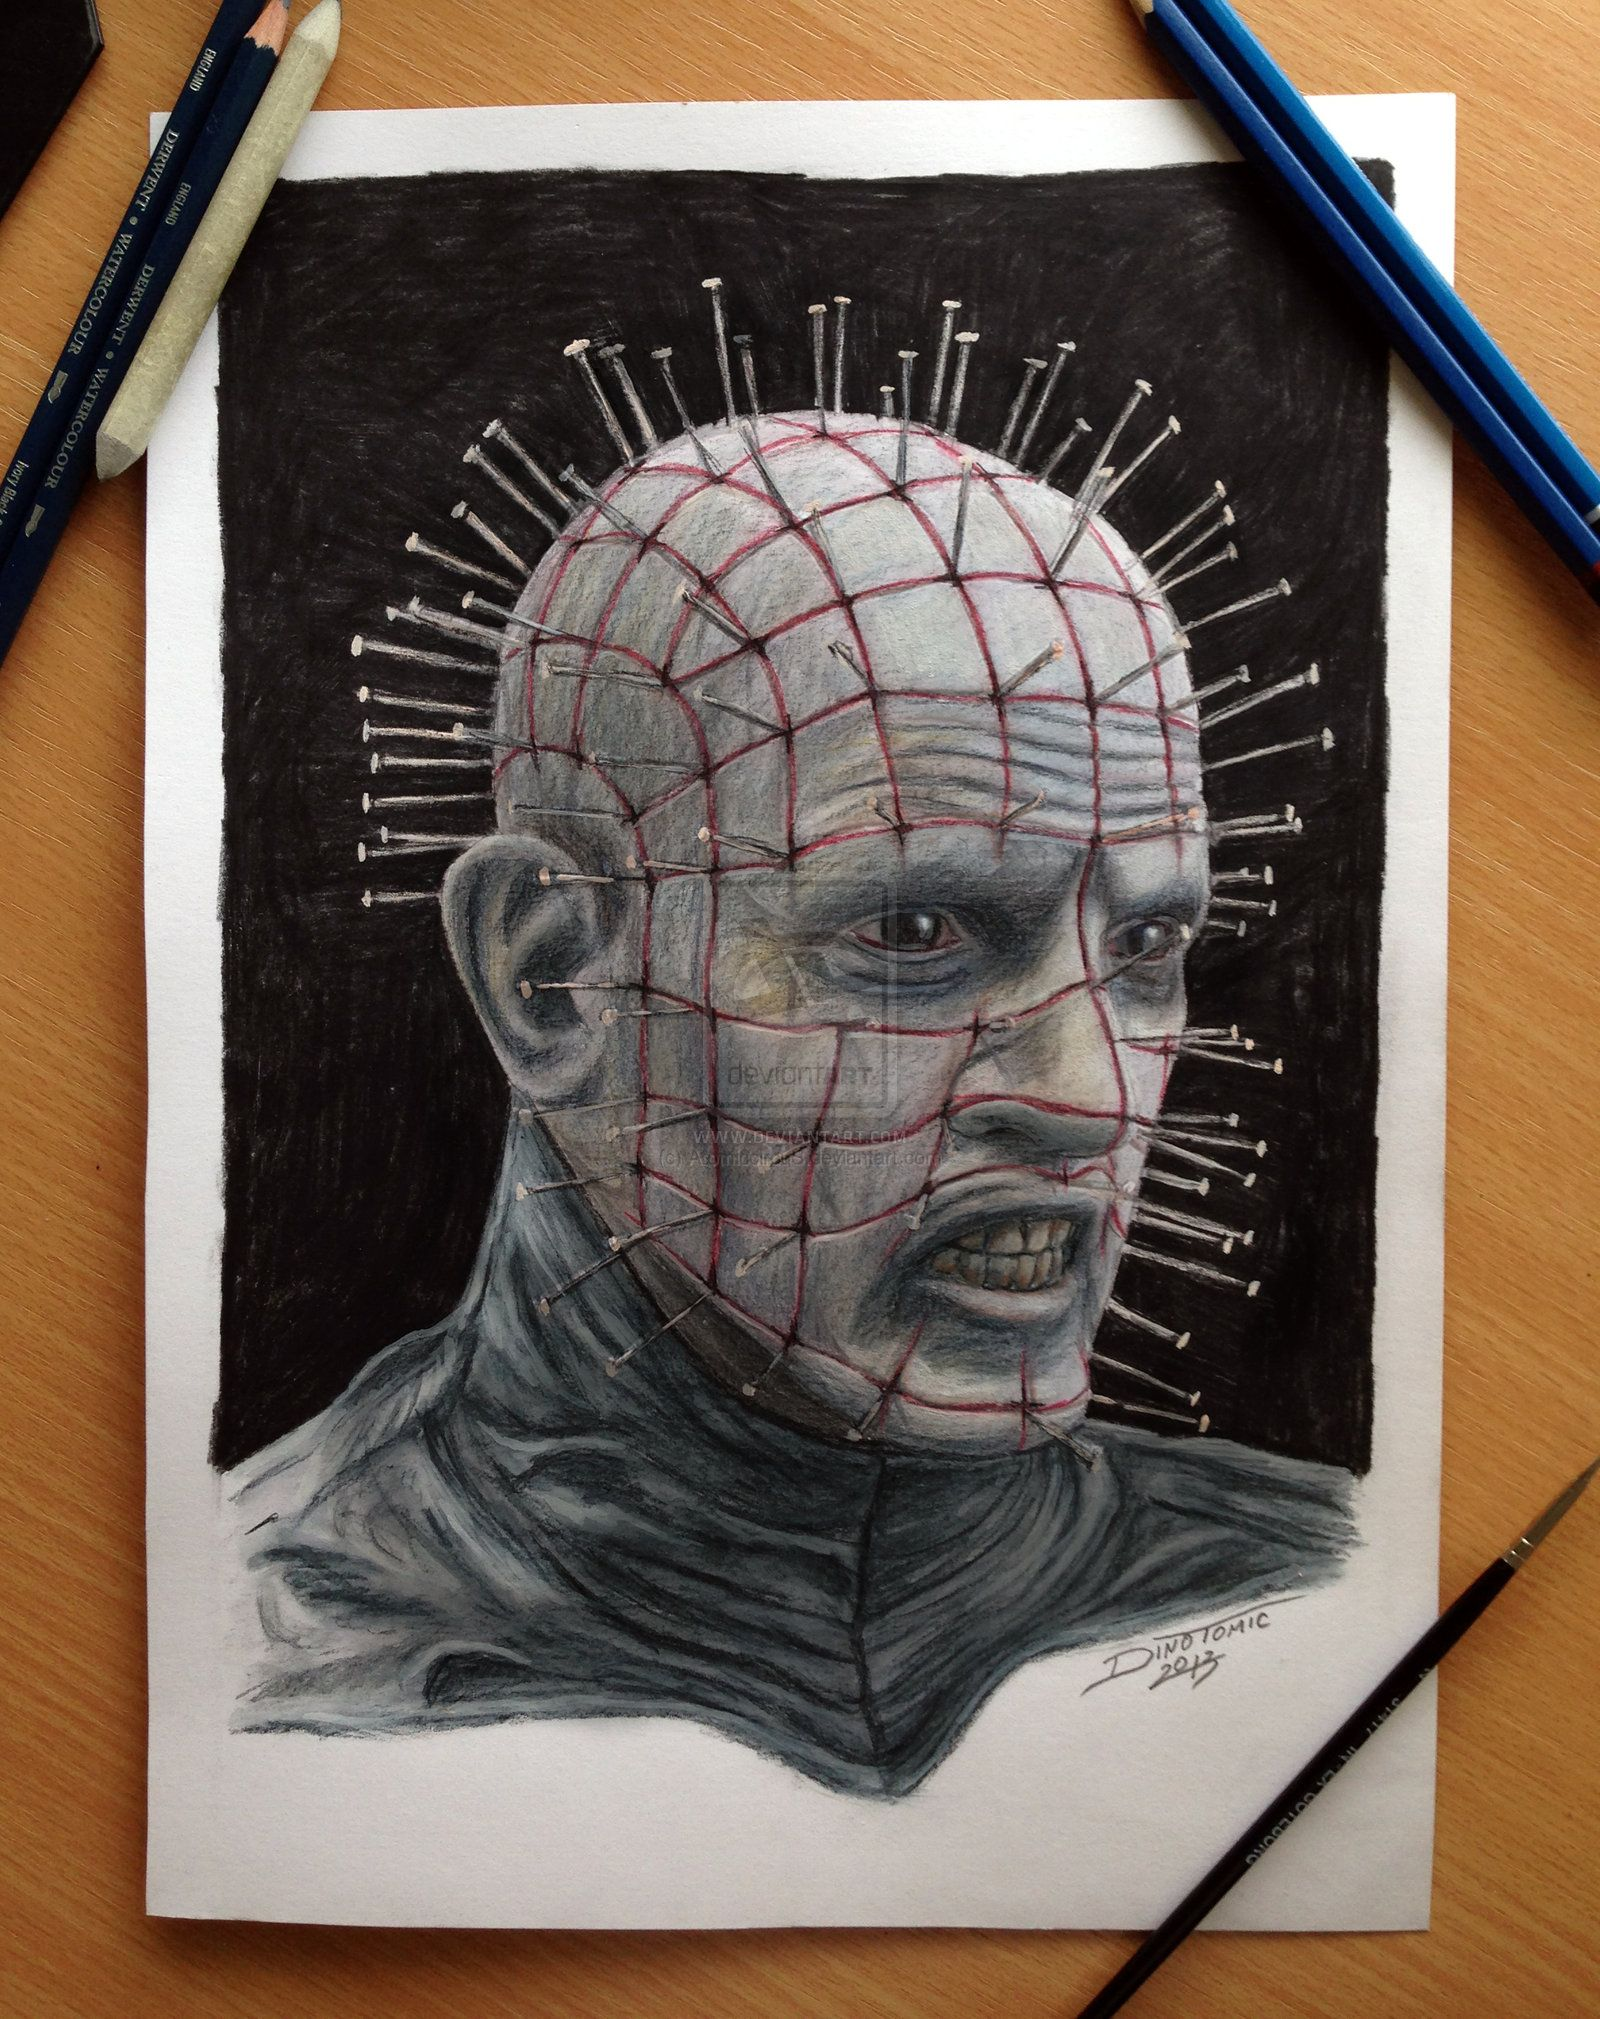 Co color to draw - Pinhead Hellraiser Color Pencil Drawing I Guess You Can Say That I Nailed This Drawing Super Fun And Hard Guy To Draw The Nails Where A Bit Confusing